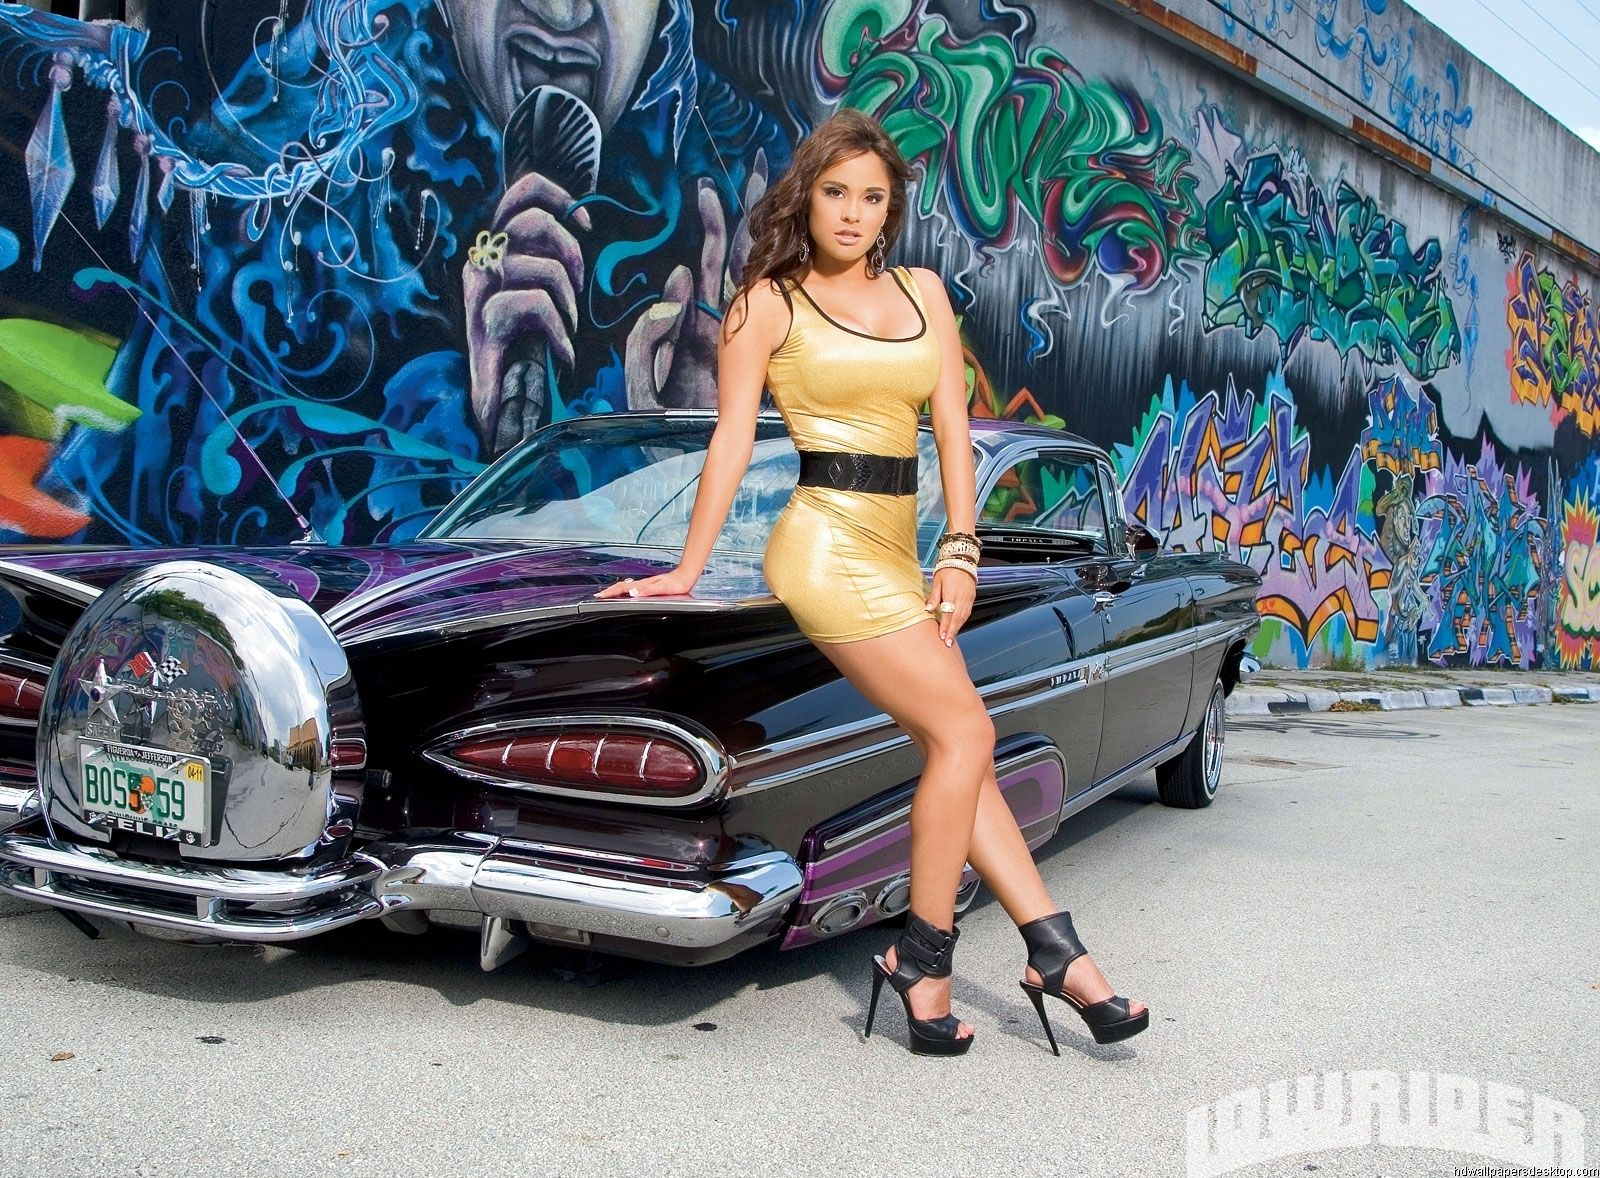 Girls Cars Girls And Cars Wallpapers Girls And Cars Wallpapers 104 Low Rider Girls Car Girls Car Girl